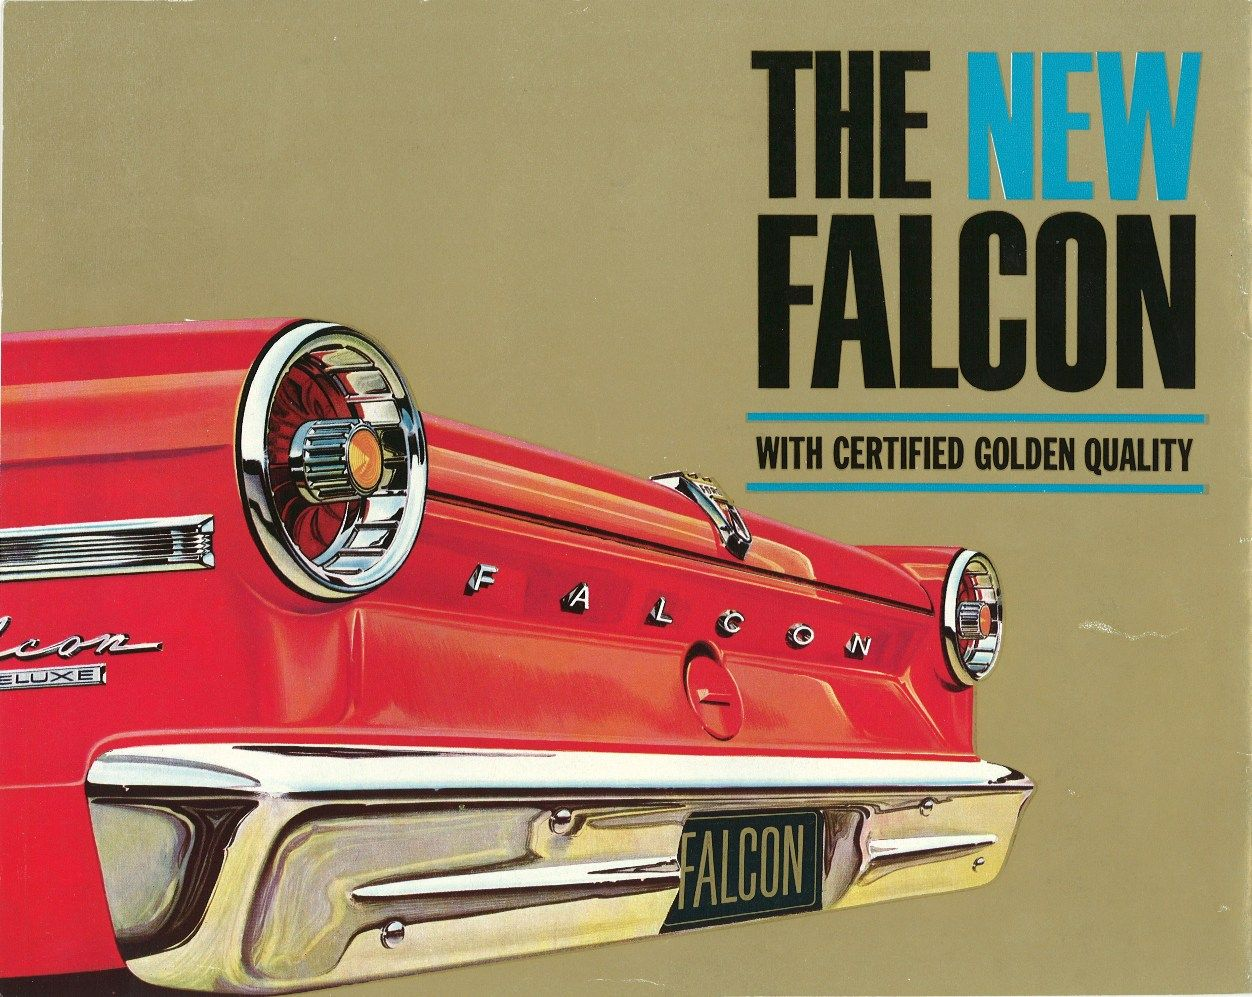 1964 Ford Falcon Deluxe Brochure-19 · Ford FalconCar AdvertisingCar Parts FalconsClassicAustralian ... & 1964 Ford Falcon Deluxe Brochure-19 | Automotriz / Cars ... markmcfarlin.com